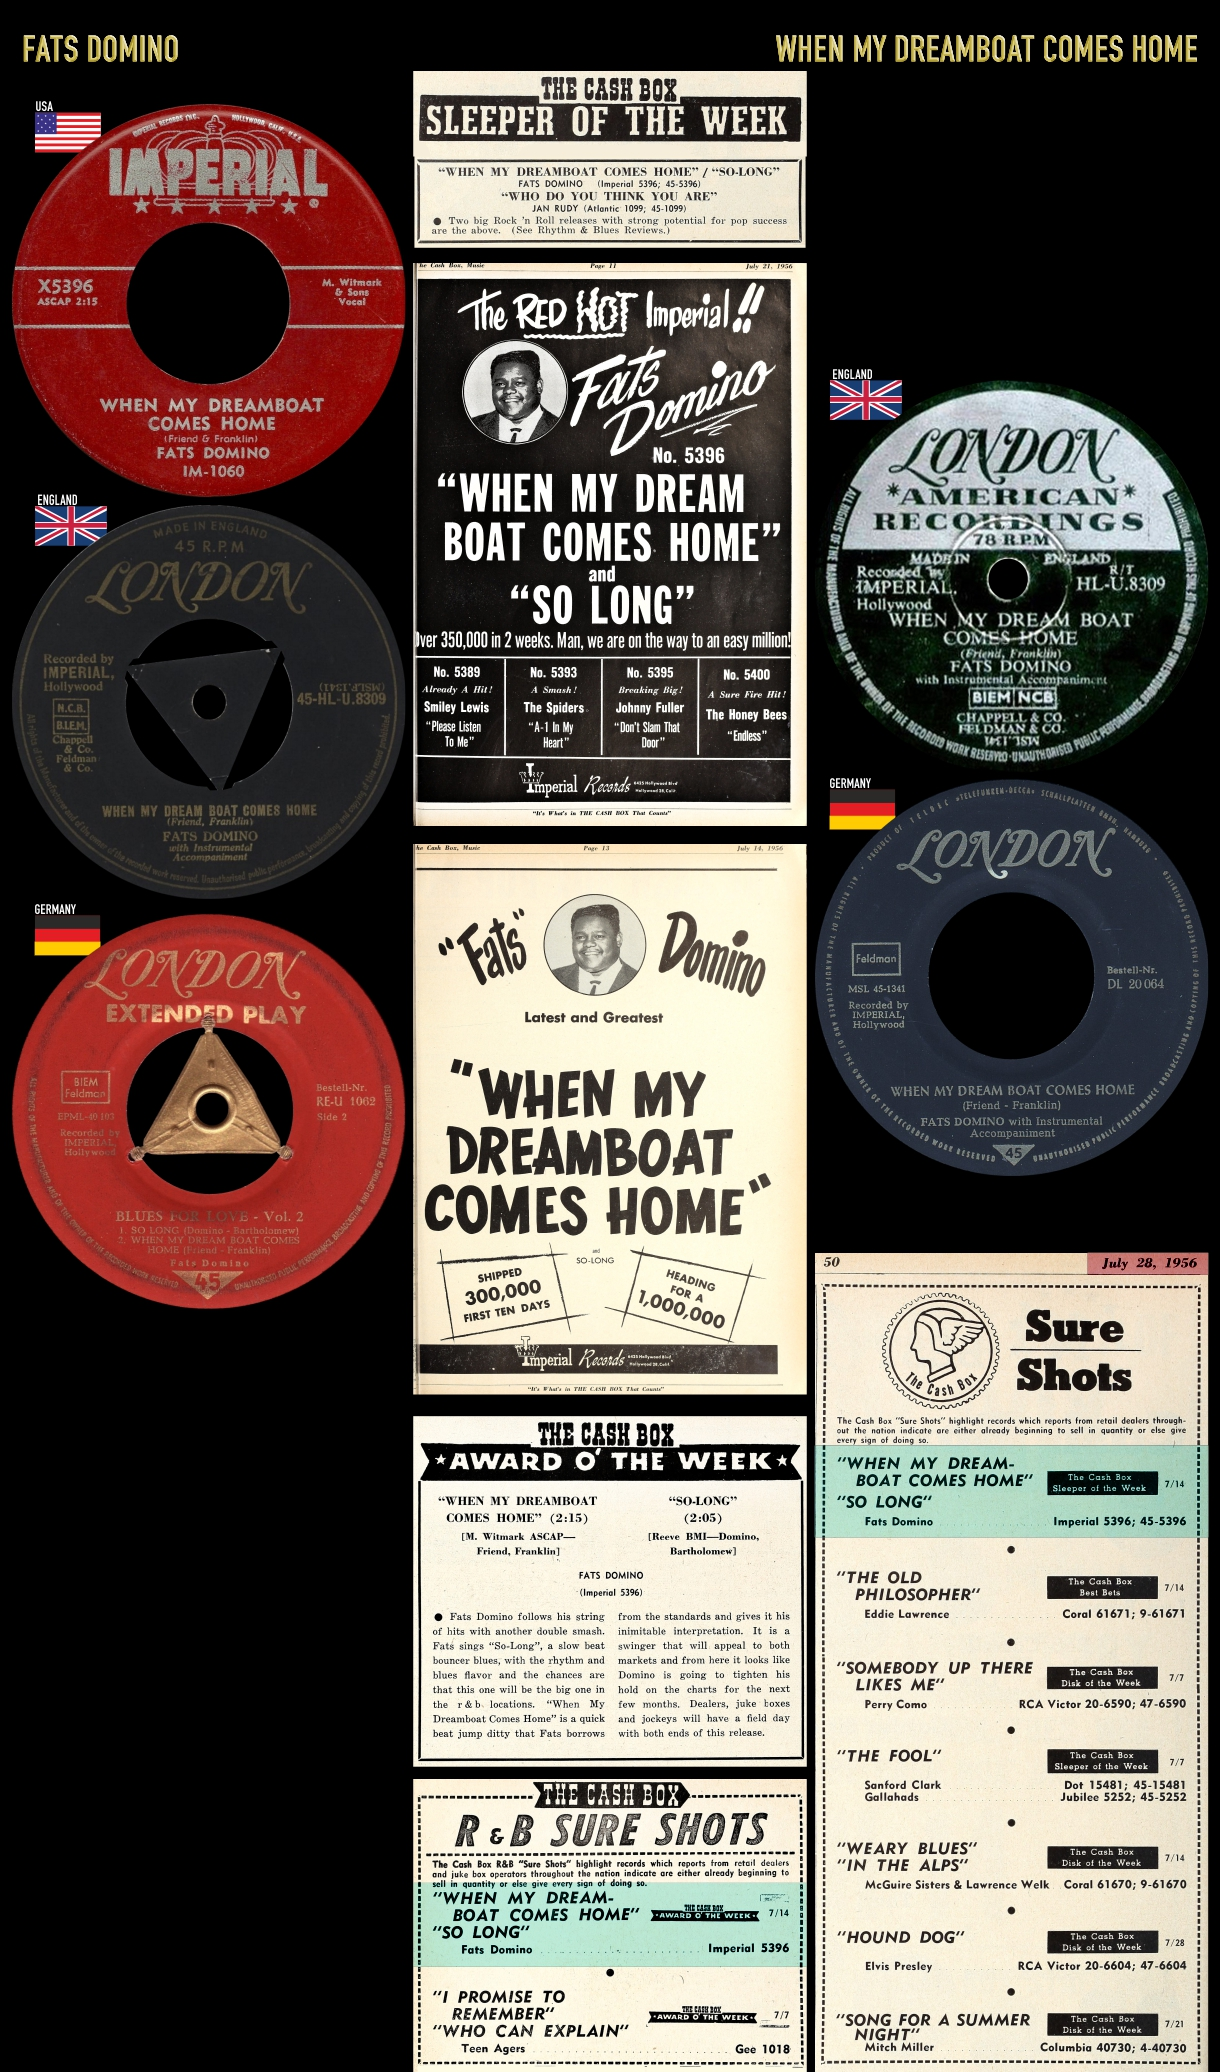 560728_Fats-Domino_When-My-Dreamboat-Comes-Home